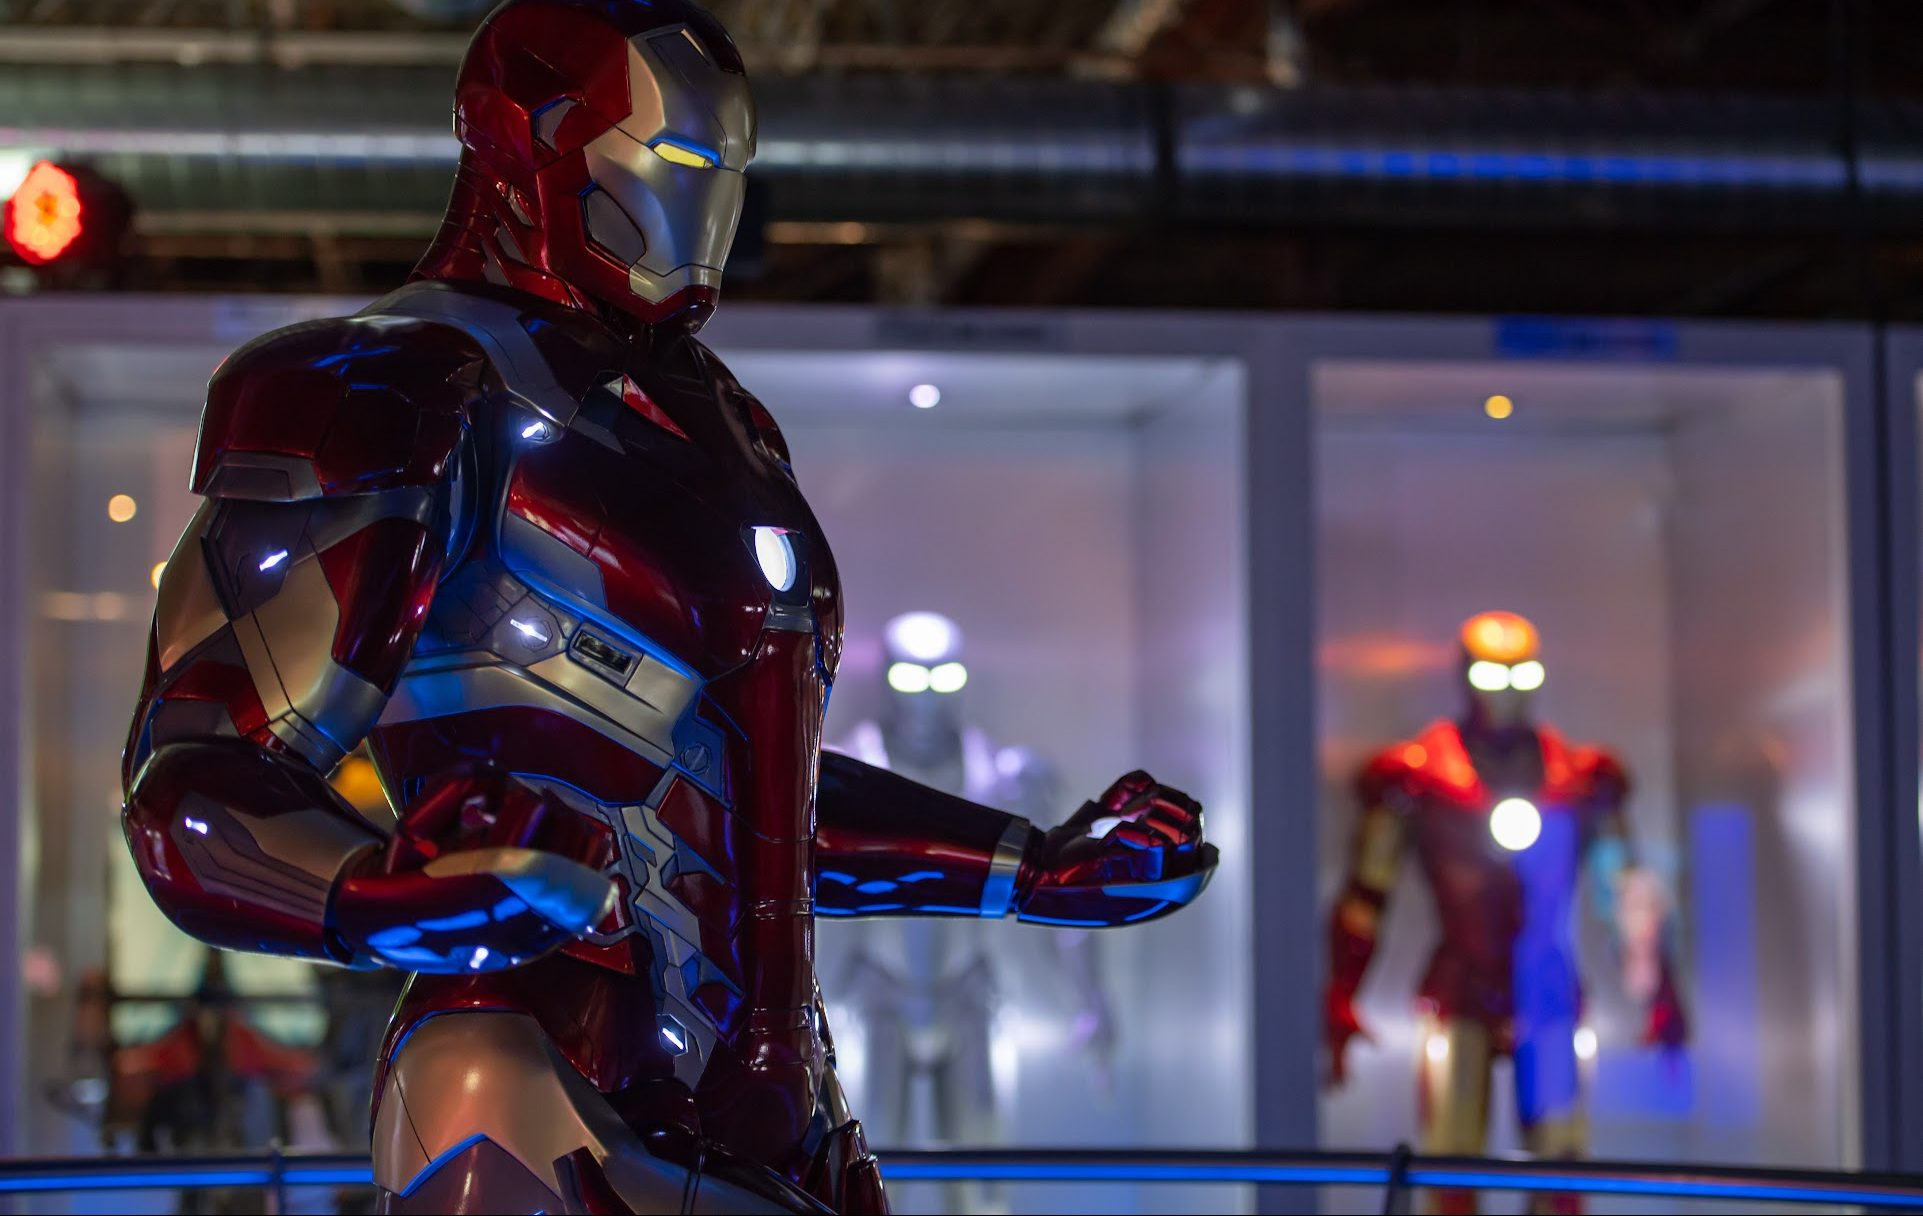 CONTEST: Win passes to Marvel Avengers S.T.A.T.I.O.N.